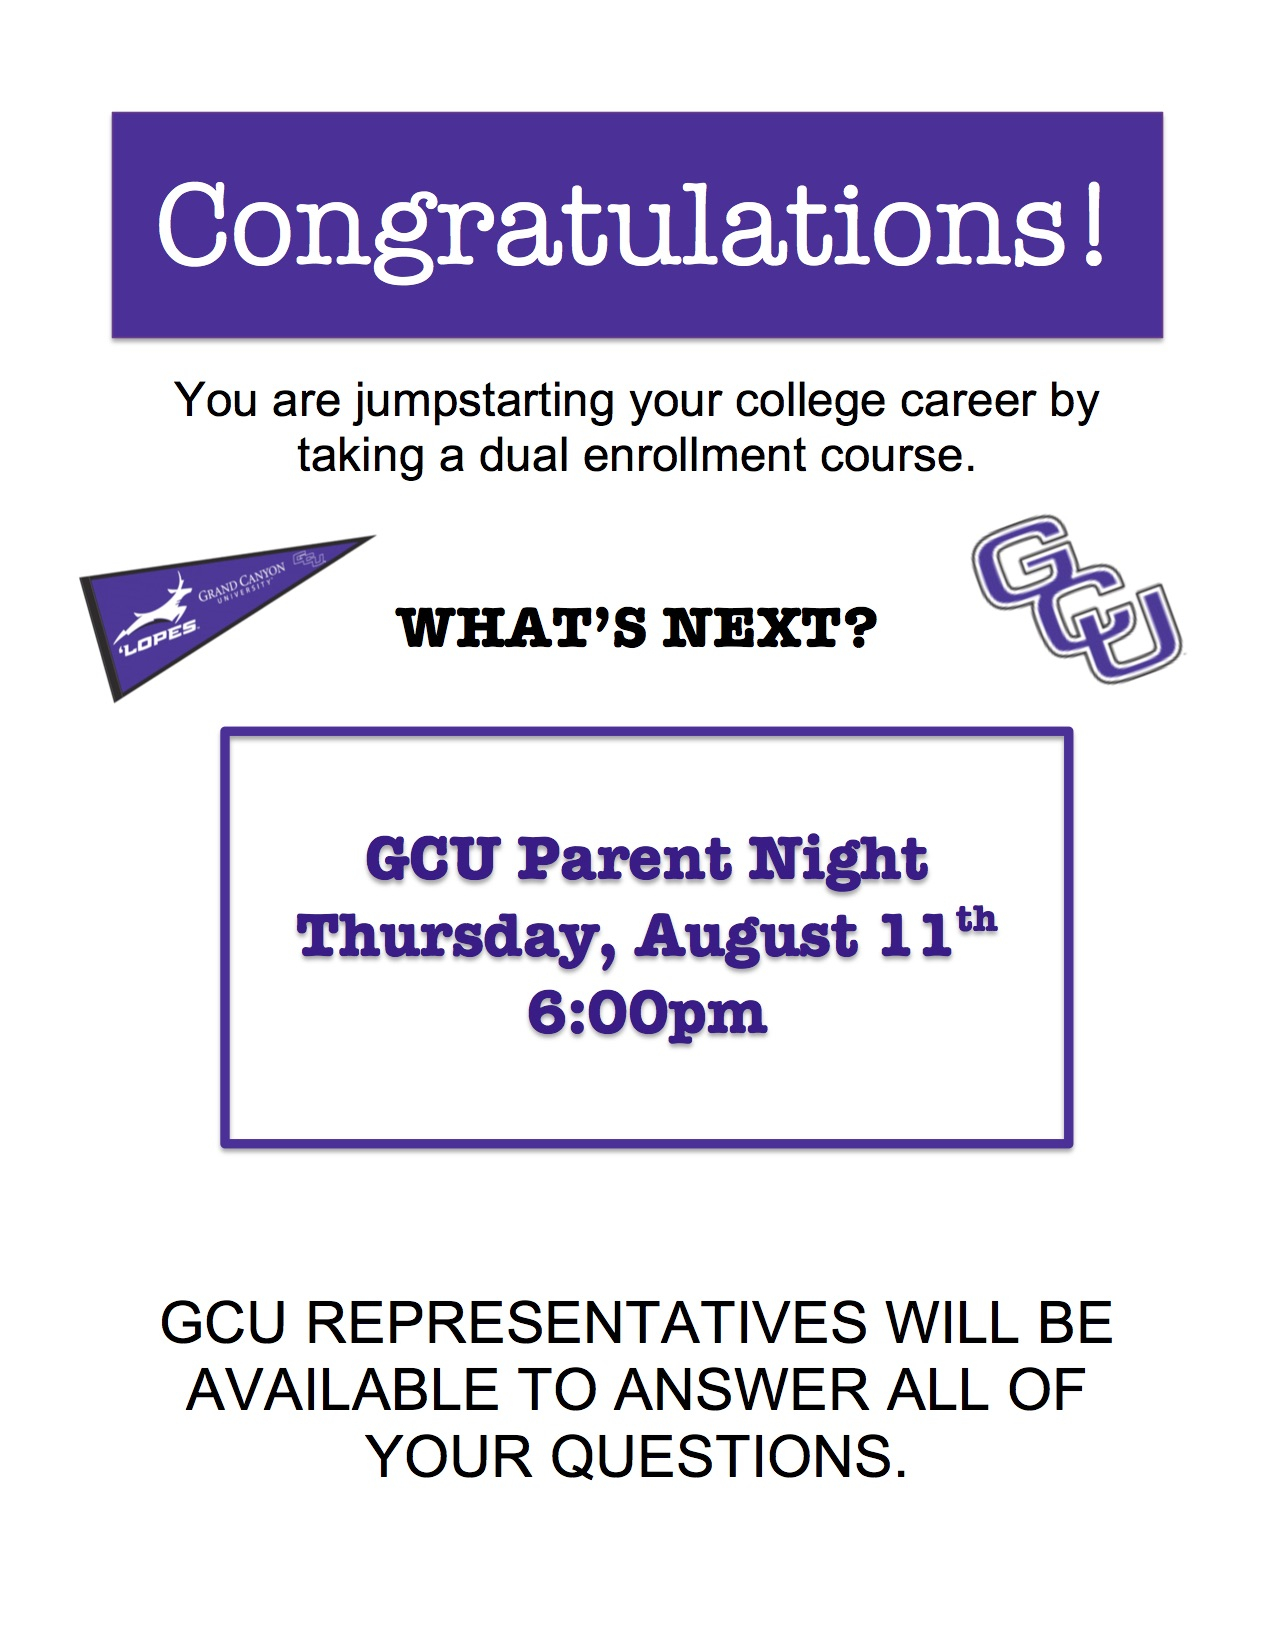 Gcu Parent Night Regarding Gcu Academic Calendar 2021 20